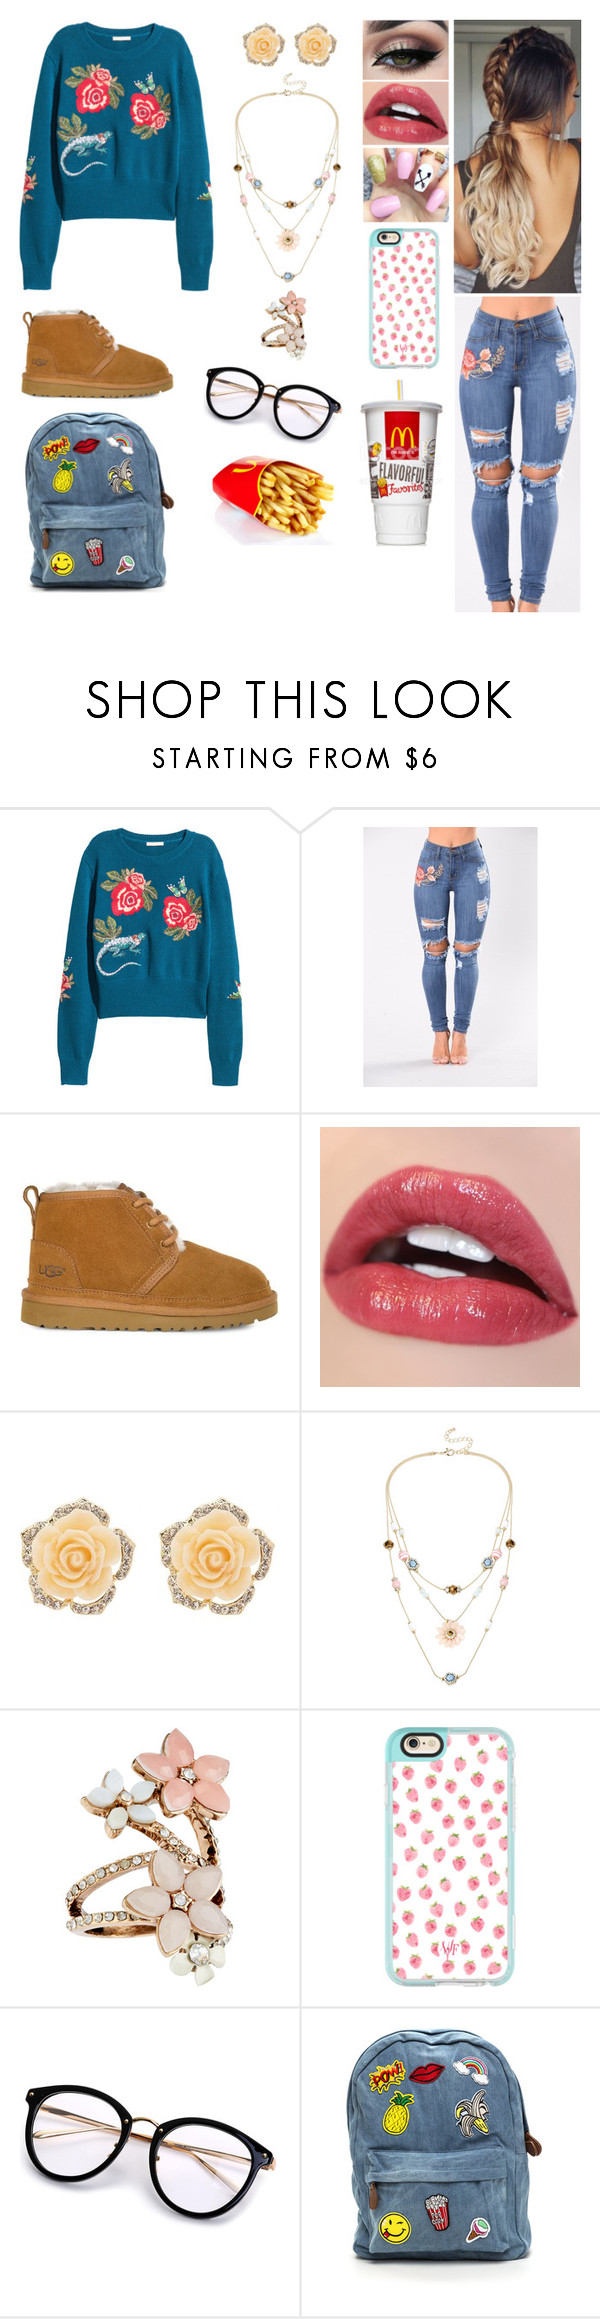 """""""Floral"""" by divinemaboundou ❤ liked on Polyvore featuring UGG, Tiger Mist, Charlotte Russe, Mixit, Accessorize and Casetify"""